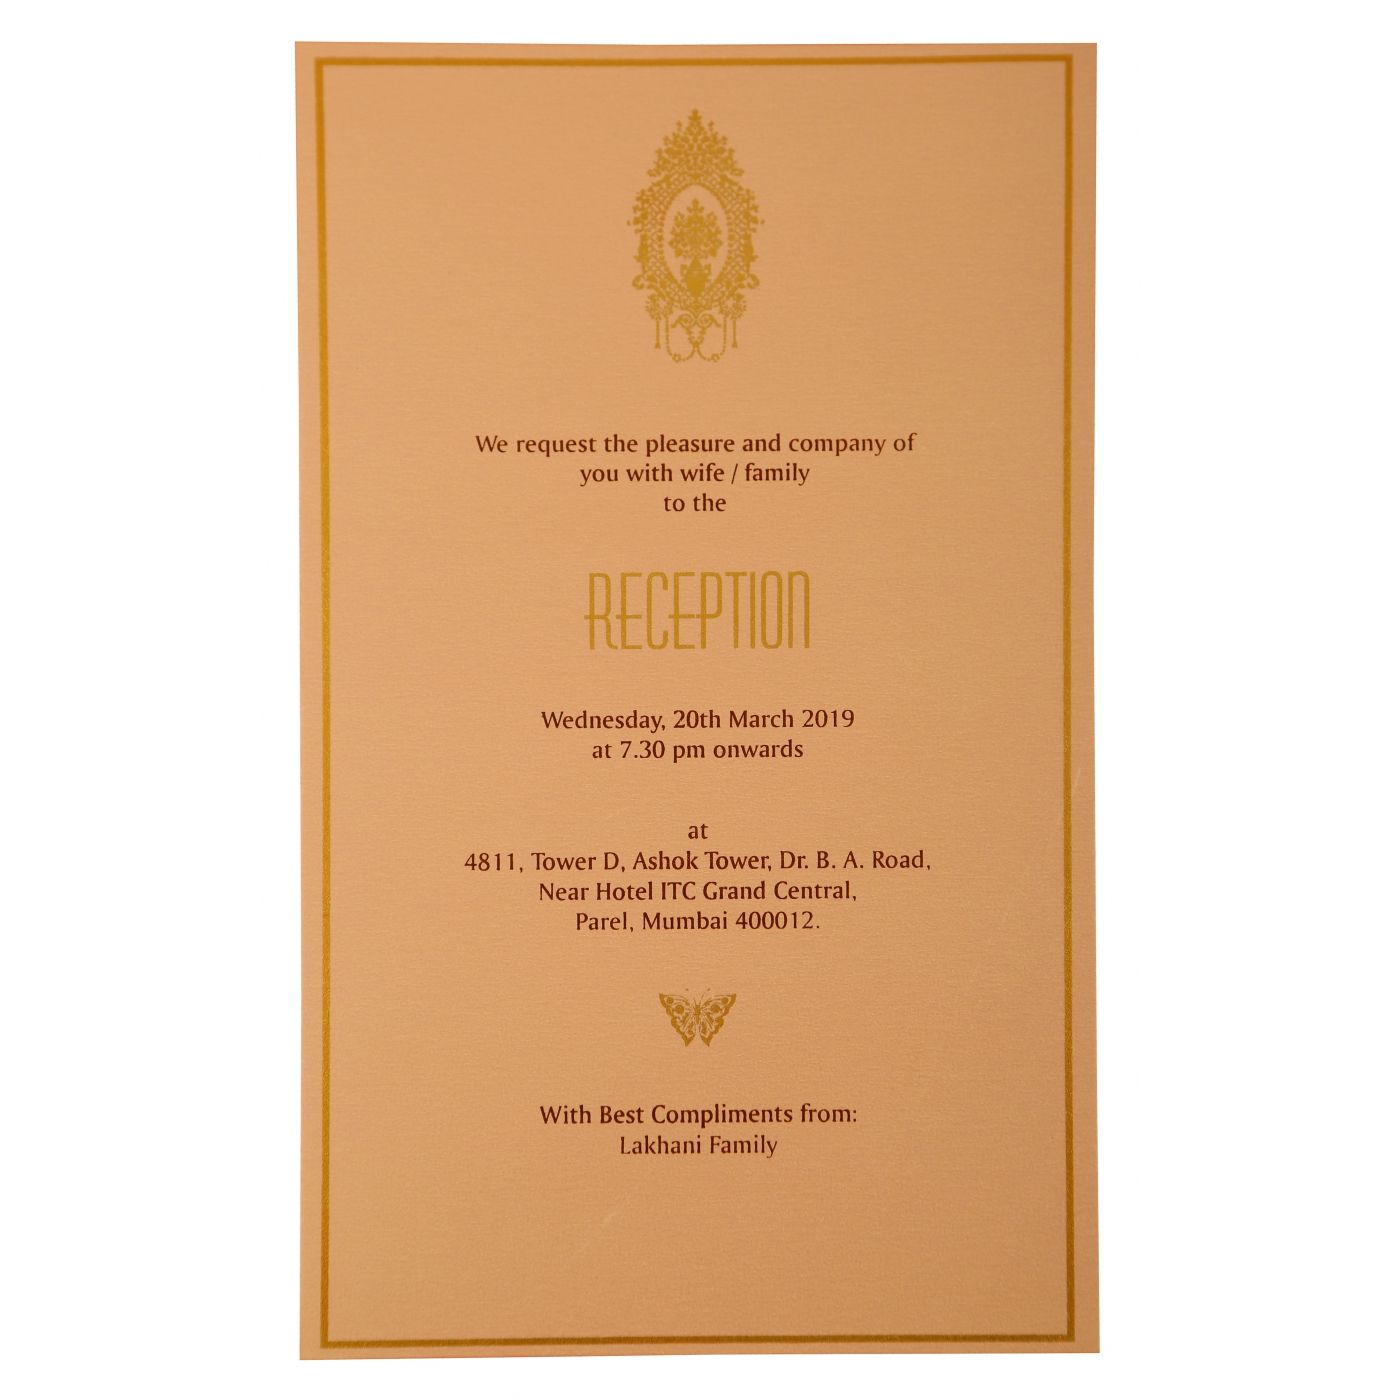 BABY PINK SHIMMERY FLORAL THEMED - FOIL STAMPED WEDDING INVITATION : CW-1921 - IndianWeddingCards